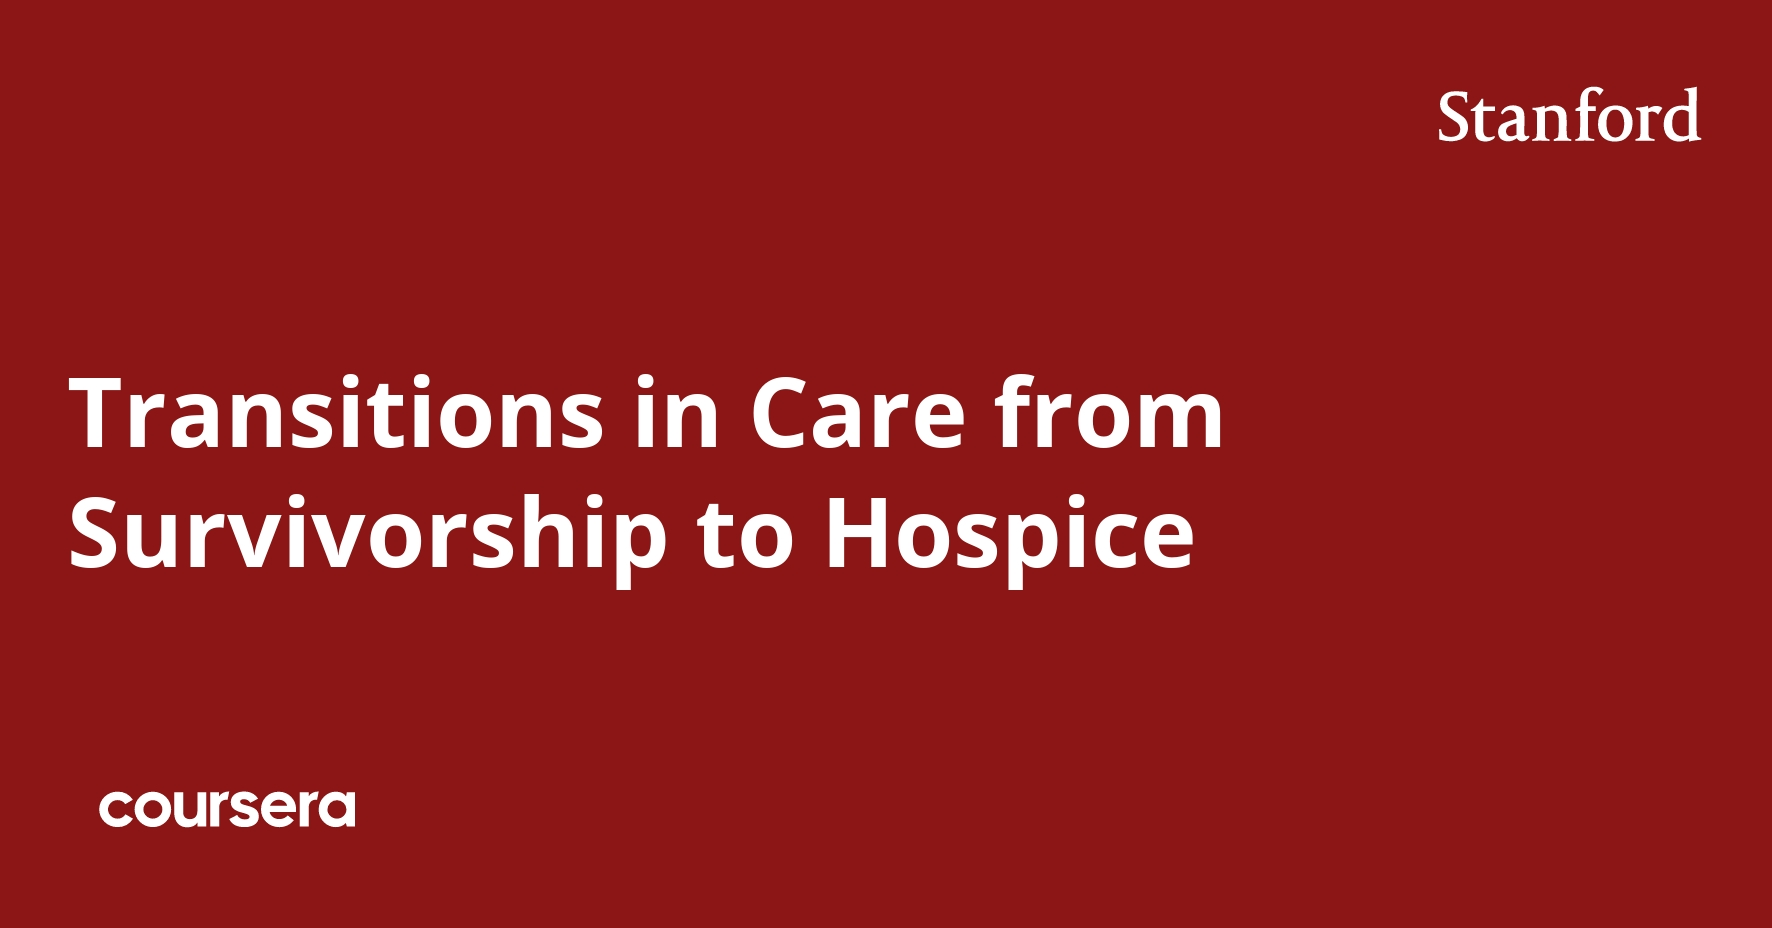 Transitions in Care from Survivorship to Hospice